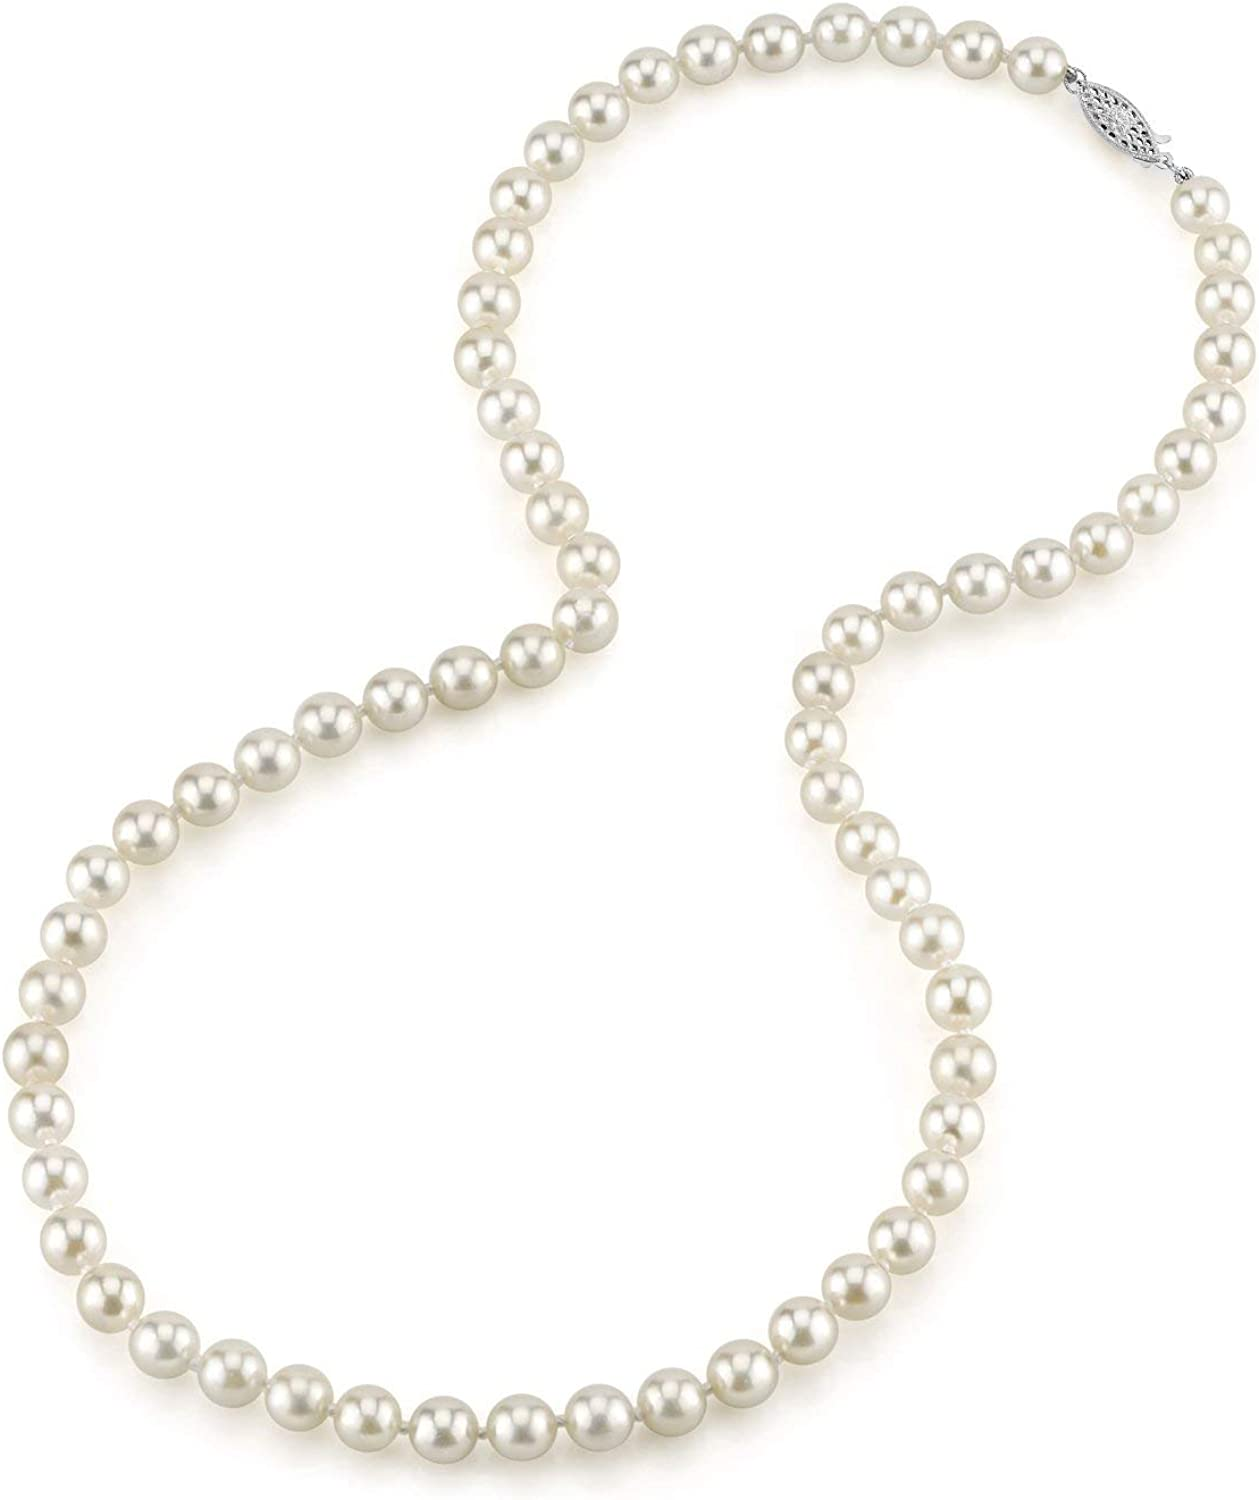 THE PEARL SOURCE Luxury goods Save money 14K Gold 6.0-6.5mm Genuine Wh Quality Round AAA